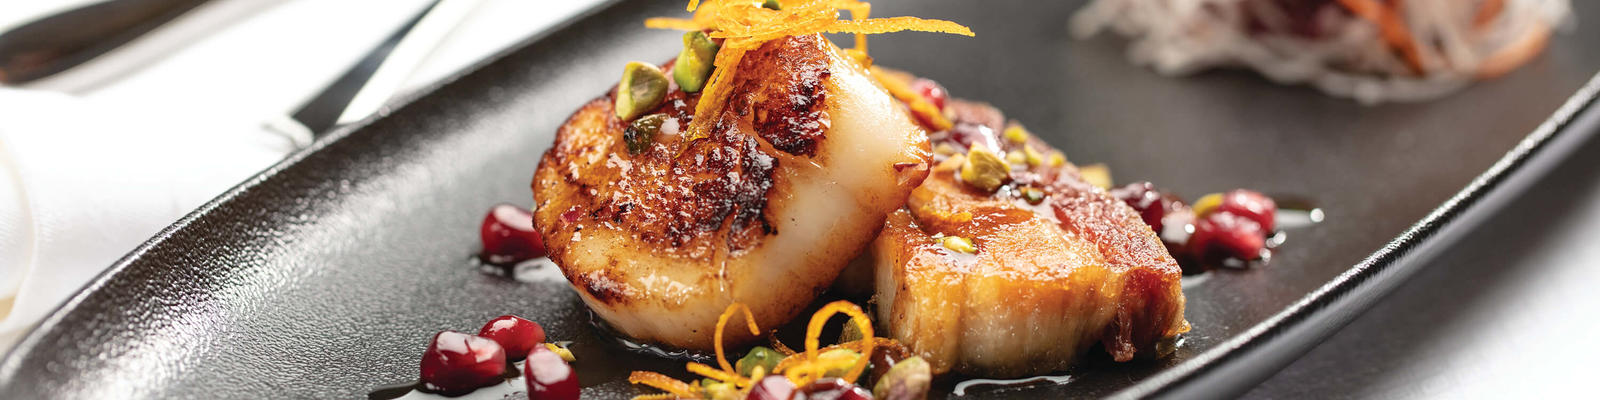 Close-up shot of plated seared diver scallops with cured pork belly confit and pomegranate seeds